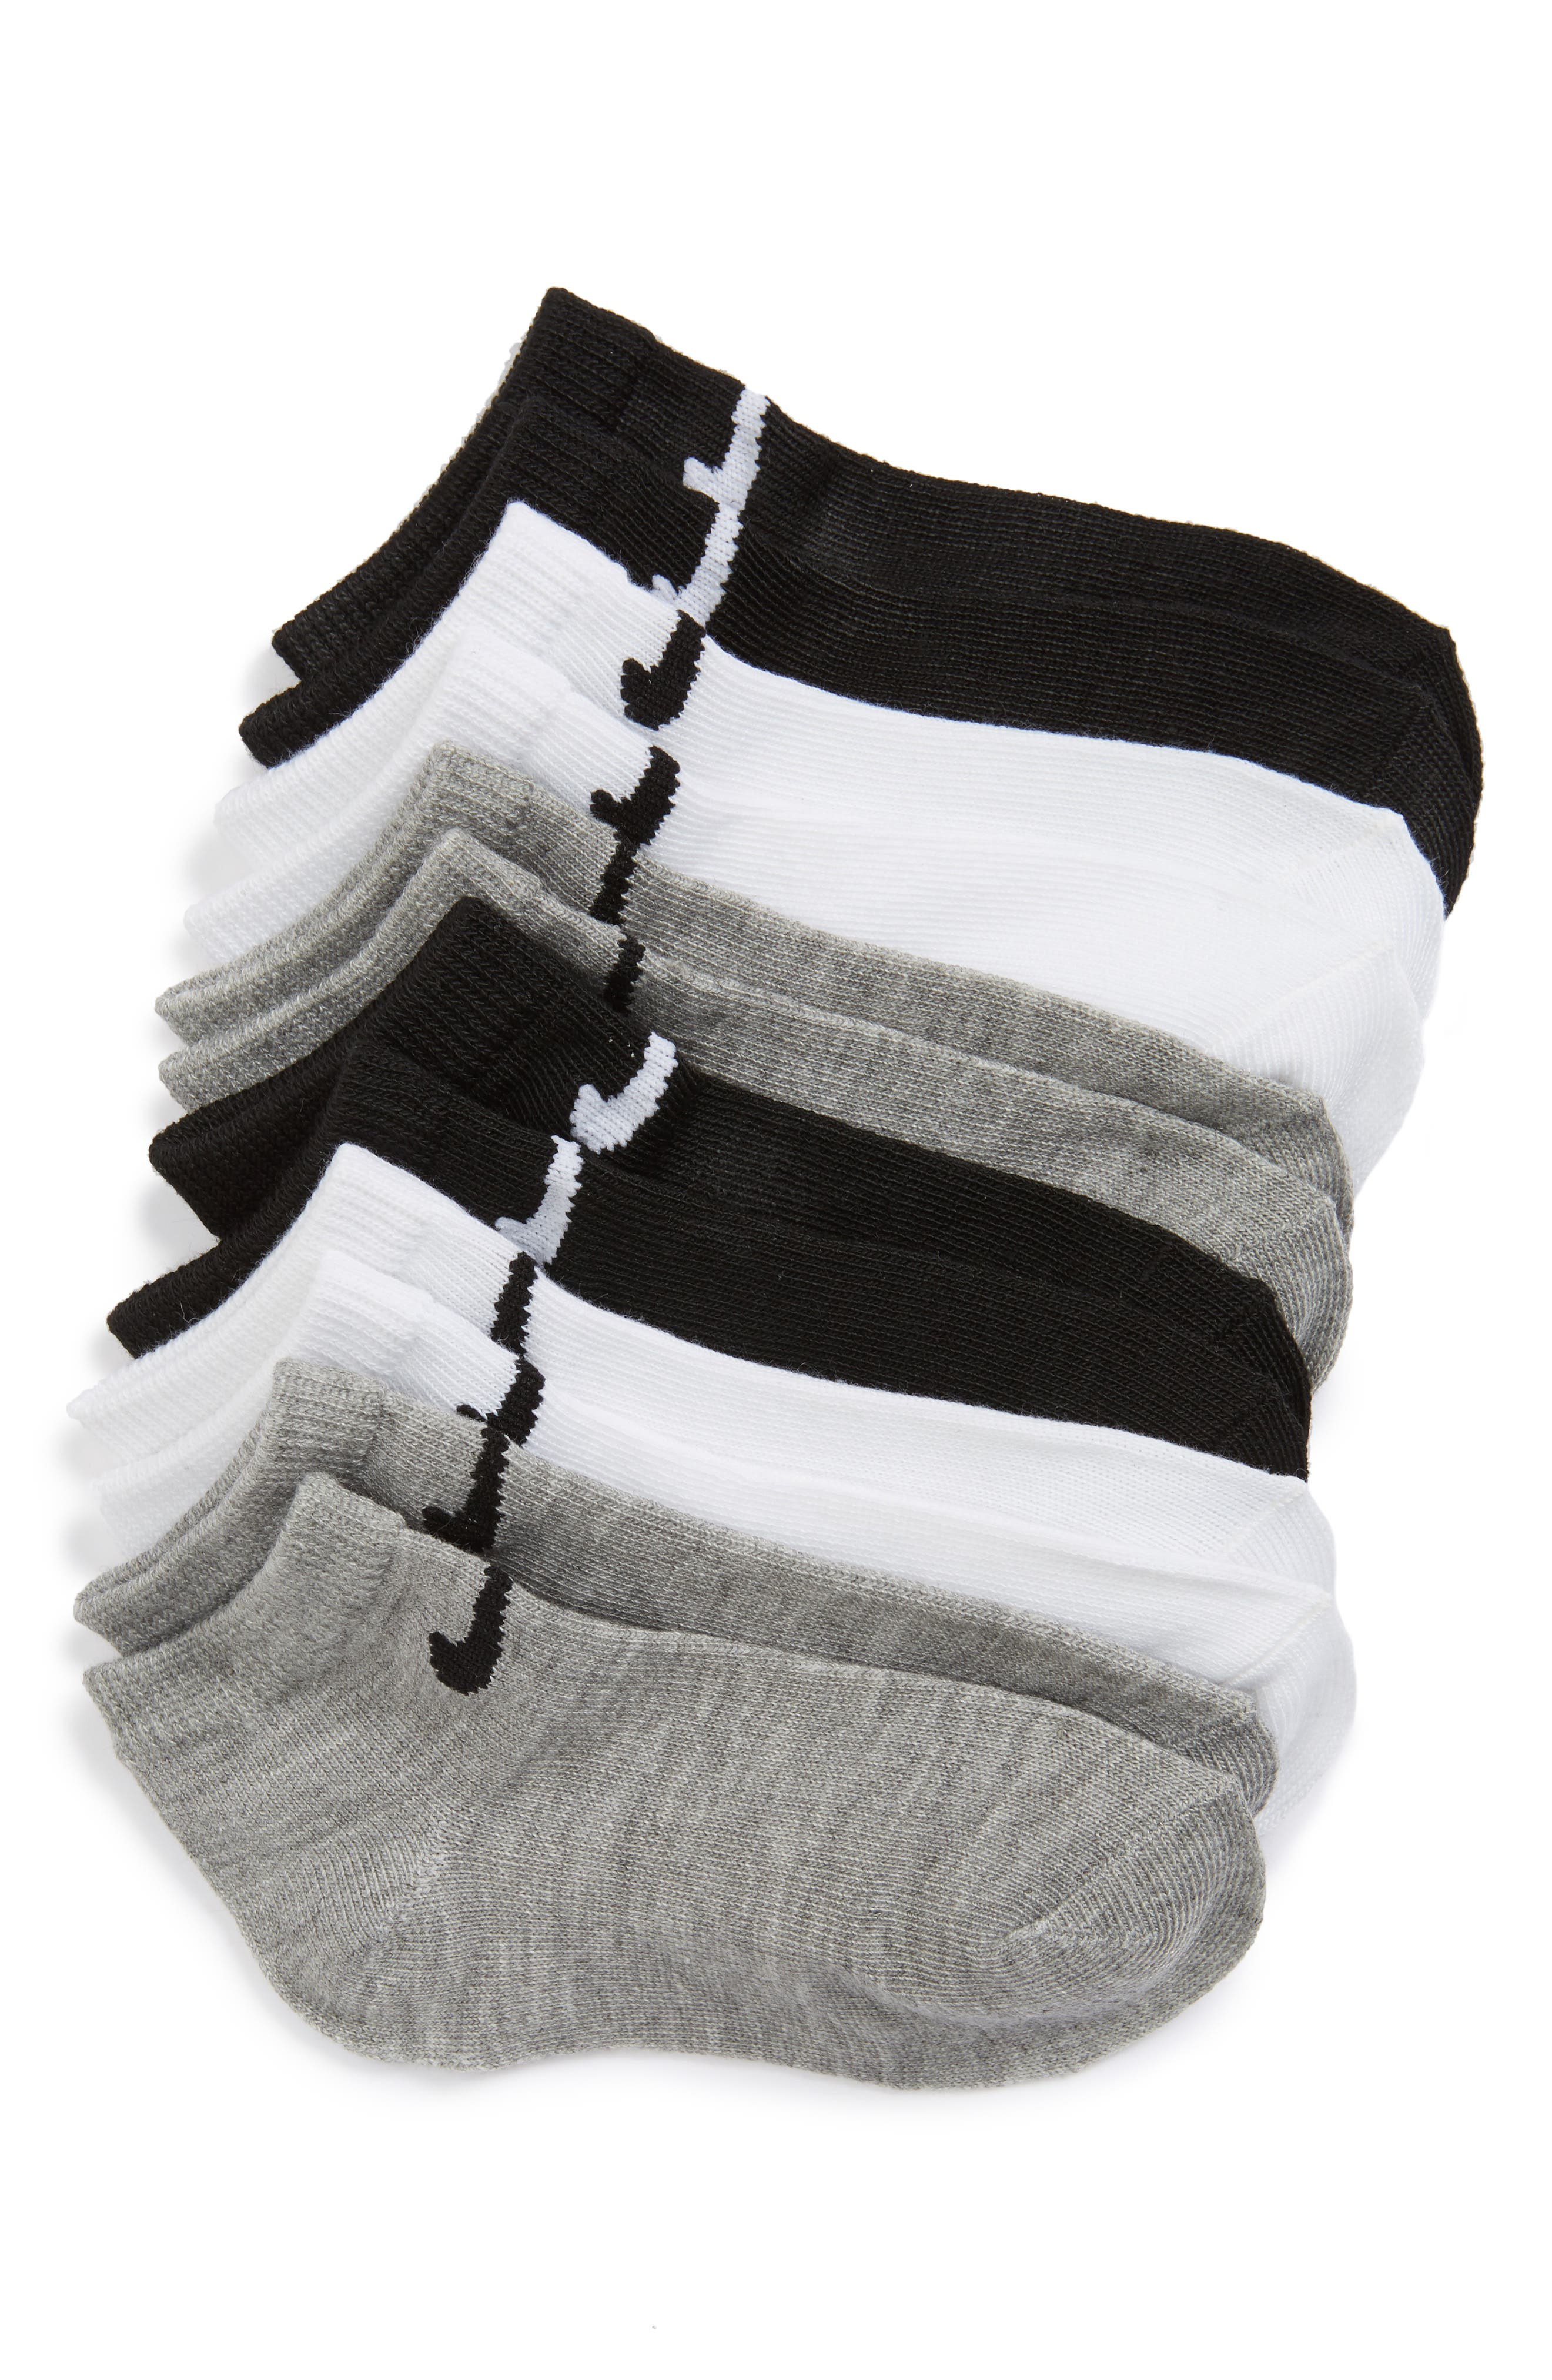 Low Cut Performance Socks,                         Main,                         color, Vintage Heather